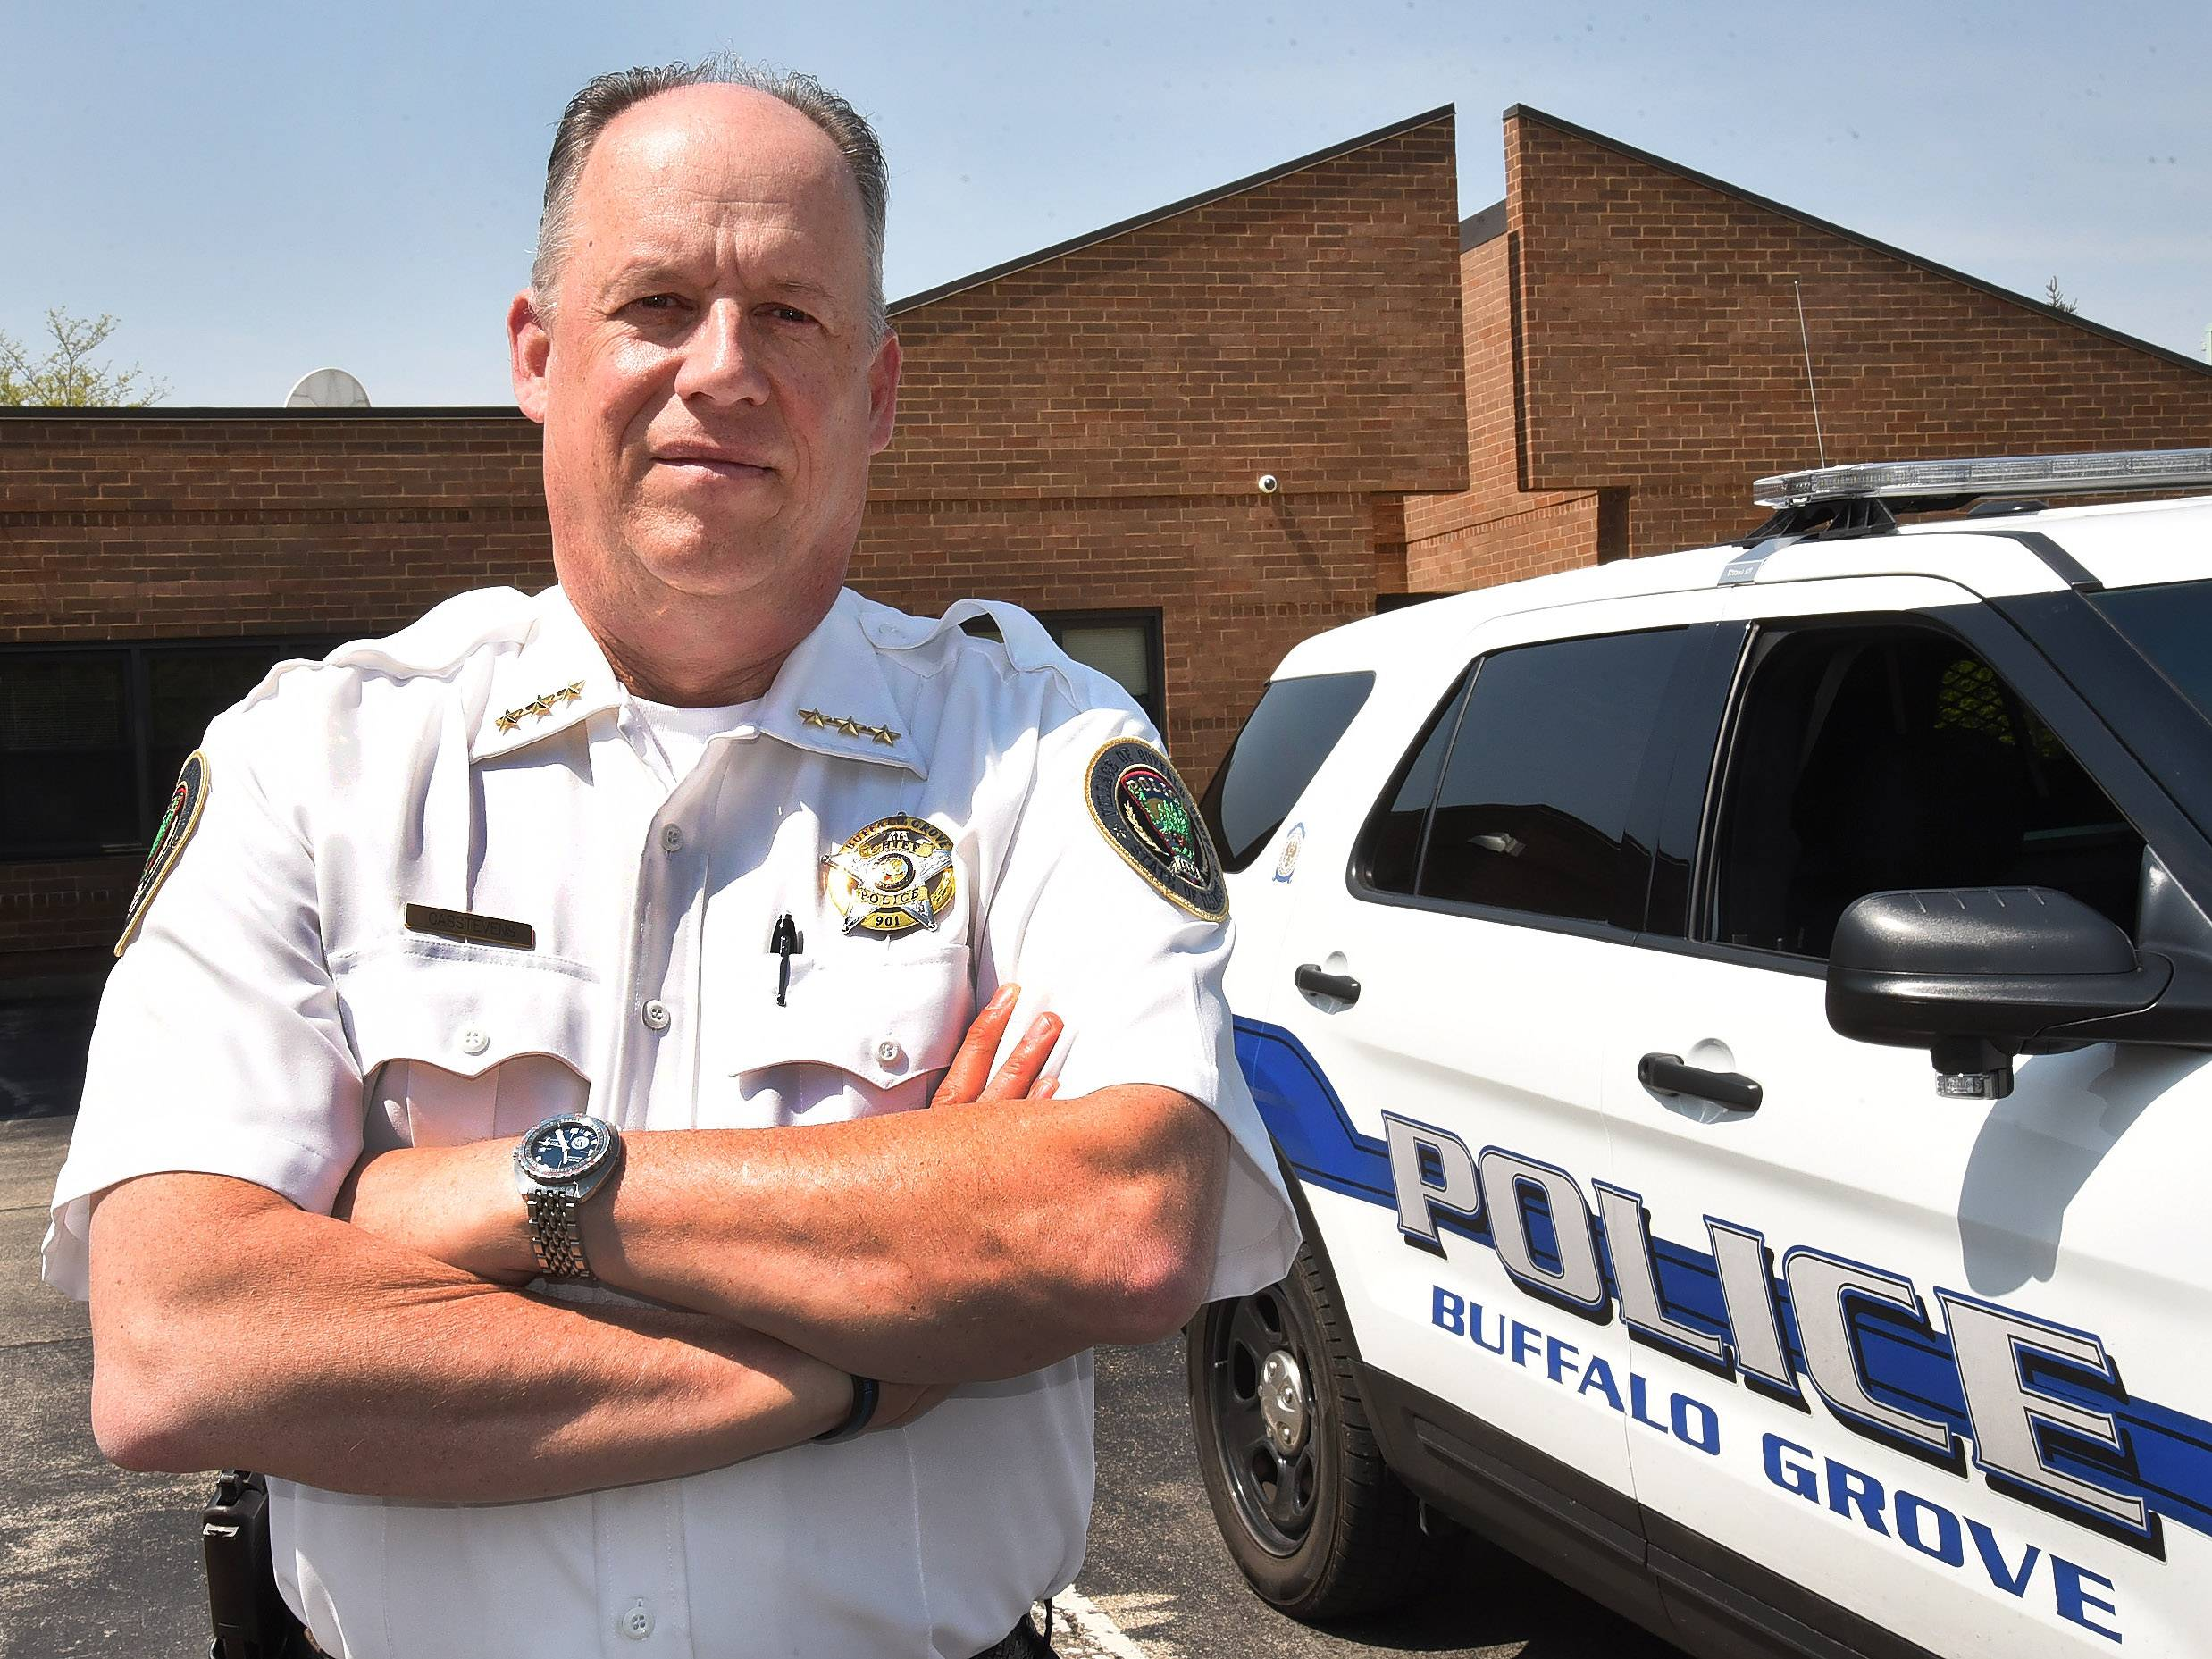 Buffalo Grove Police Chief Steven Casstevens wrote a front-page essay on why it's important to take time to appreciate our local police.